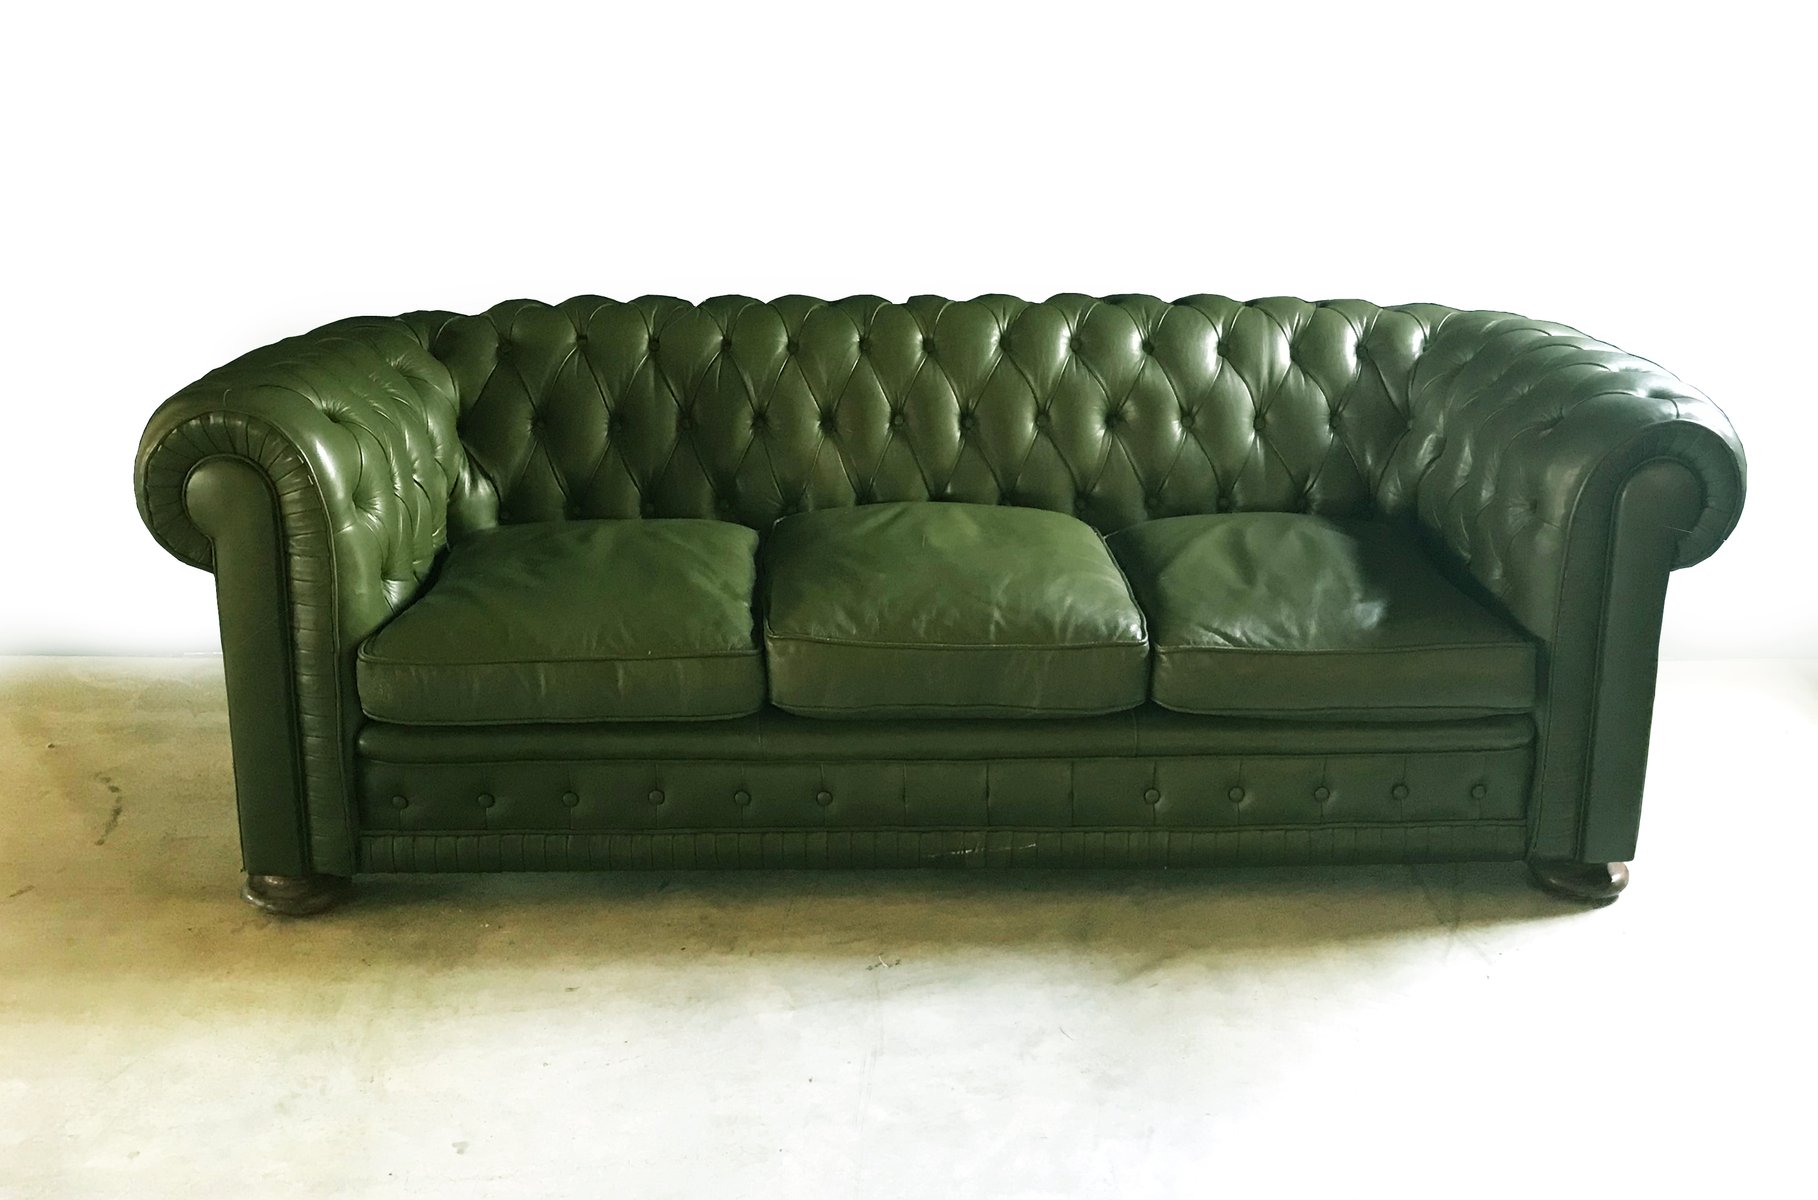 Green Leather Chesterfield Sofa 1970s